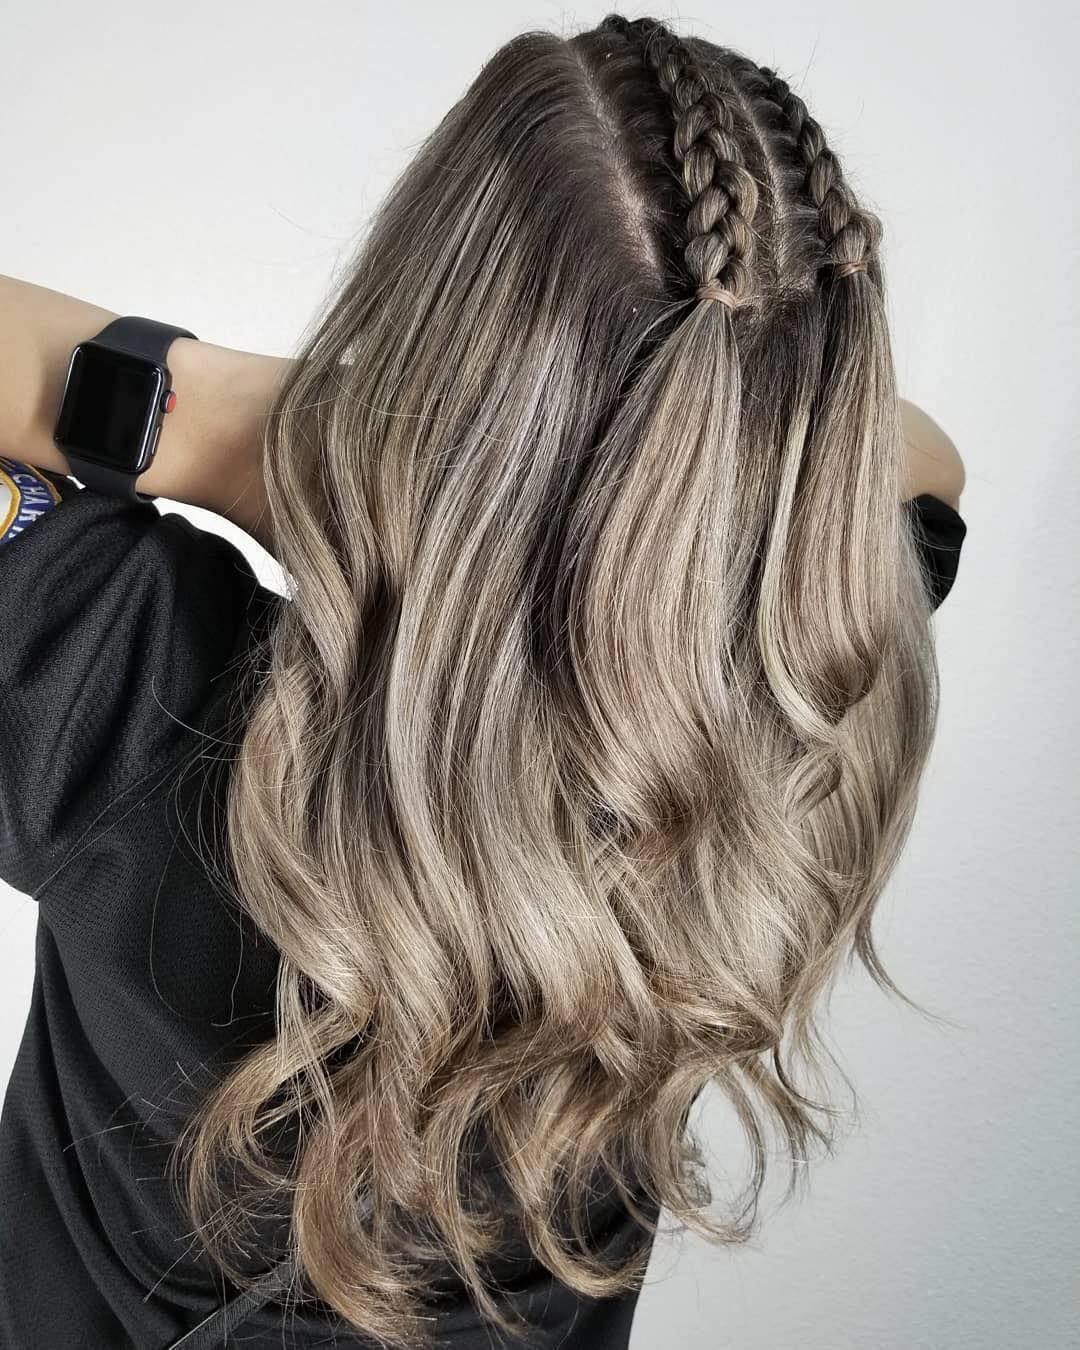 """Photo of • EVERYTHING • BALAYAGE • on Instagram: """"Top Braided Beauty 🎨 By Bea Benn …"""